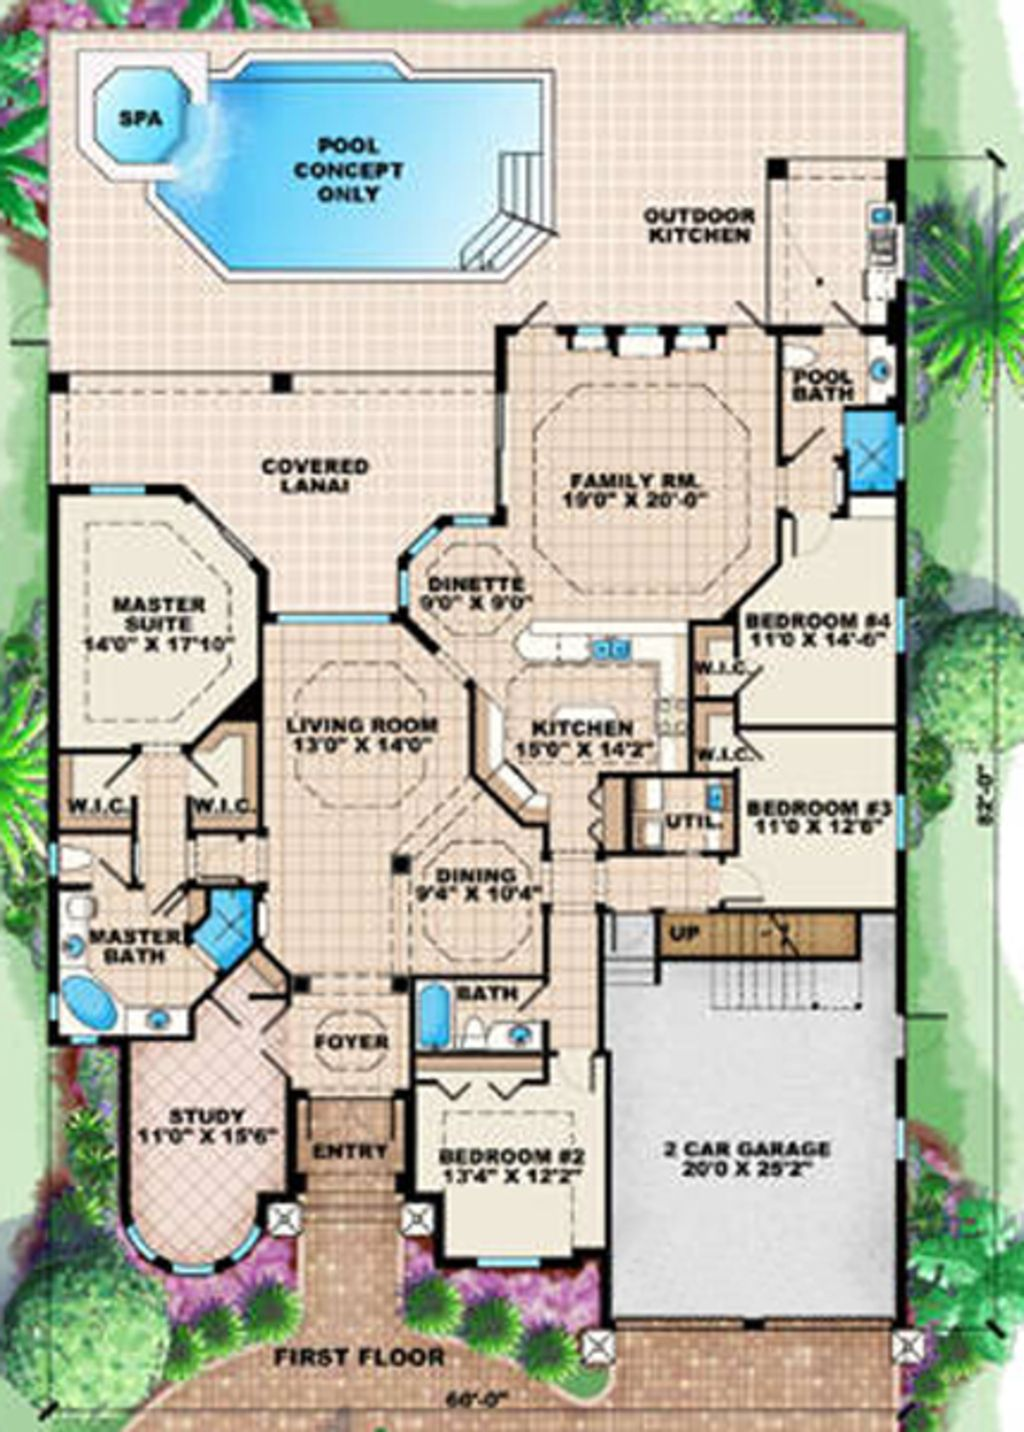 Mediterranean Style House Plan 4 Beds 3 Baths 3145 Sq Ft Plan 27 422 Pool House Plans Mediterranean House Plan Florida House Plans